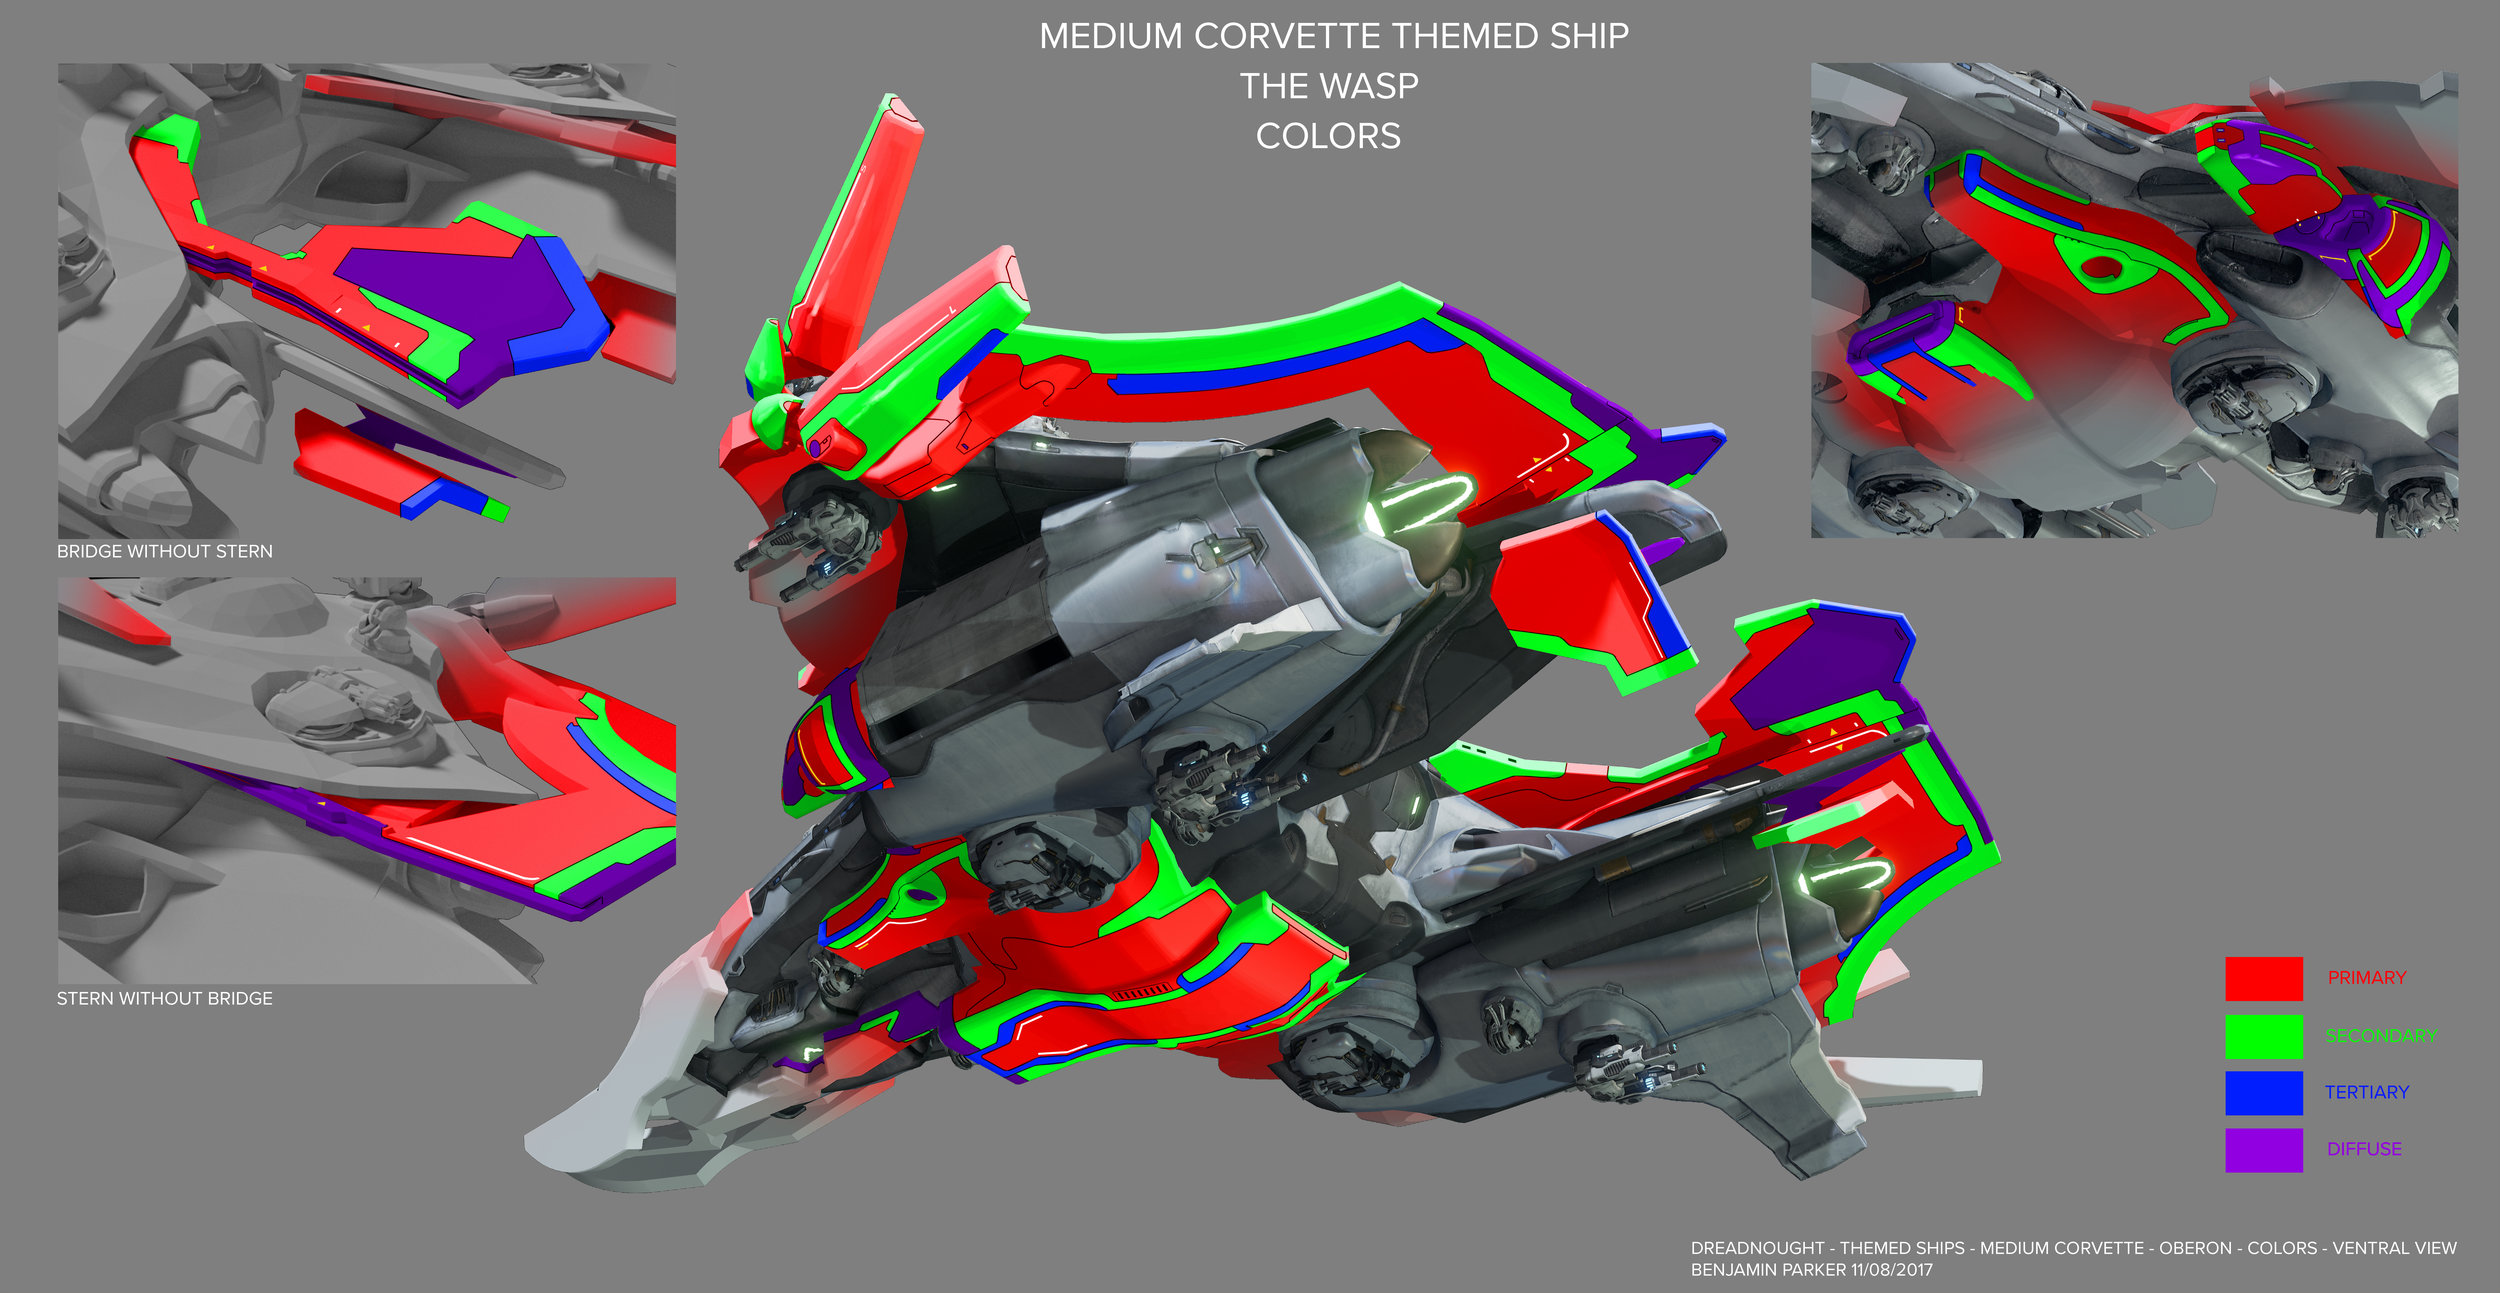 M_Corvette_Ventral_Colors_Final.jpg